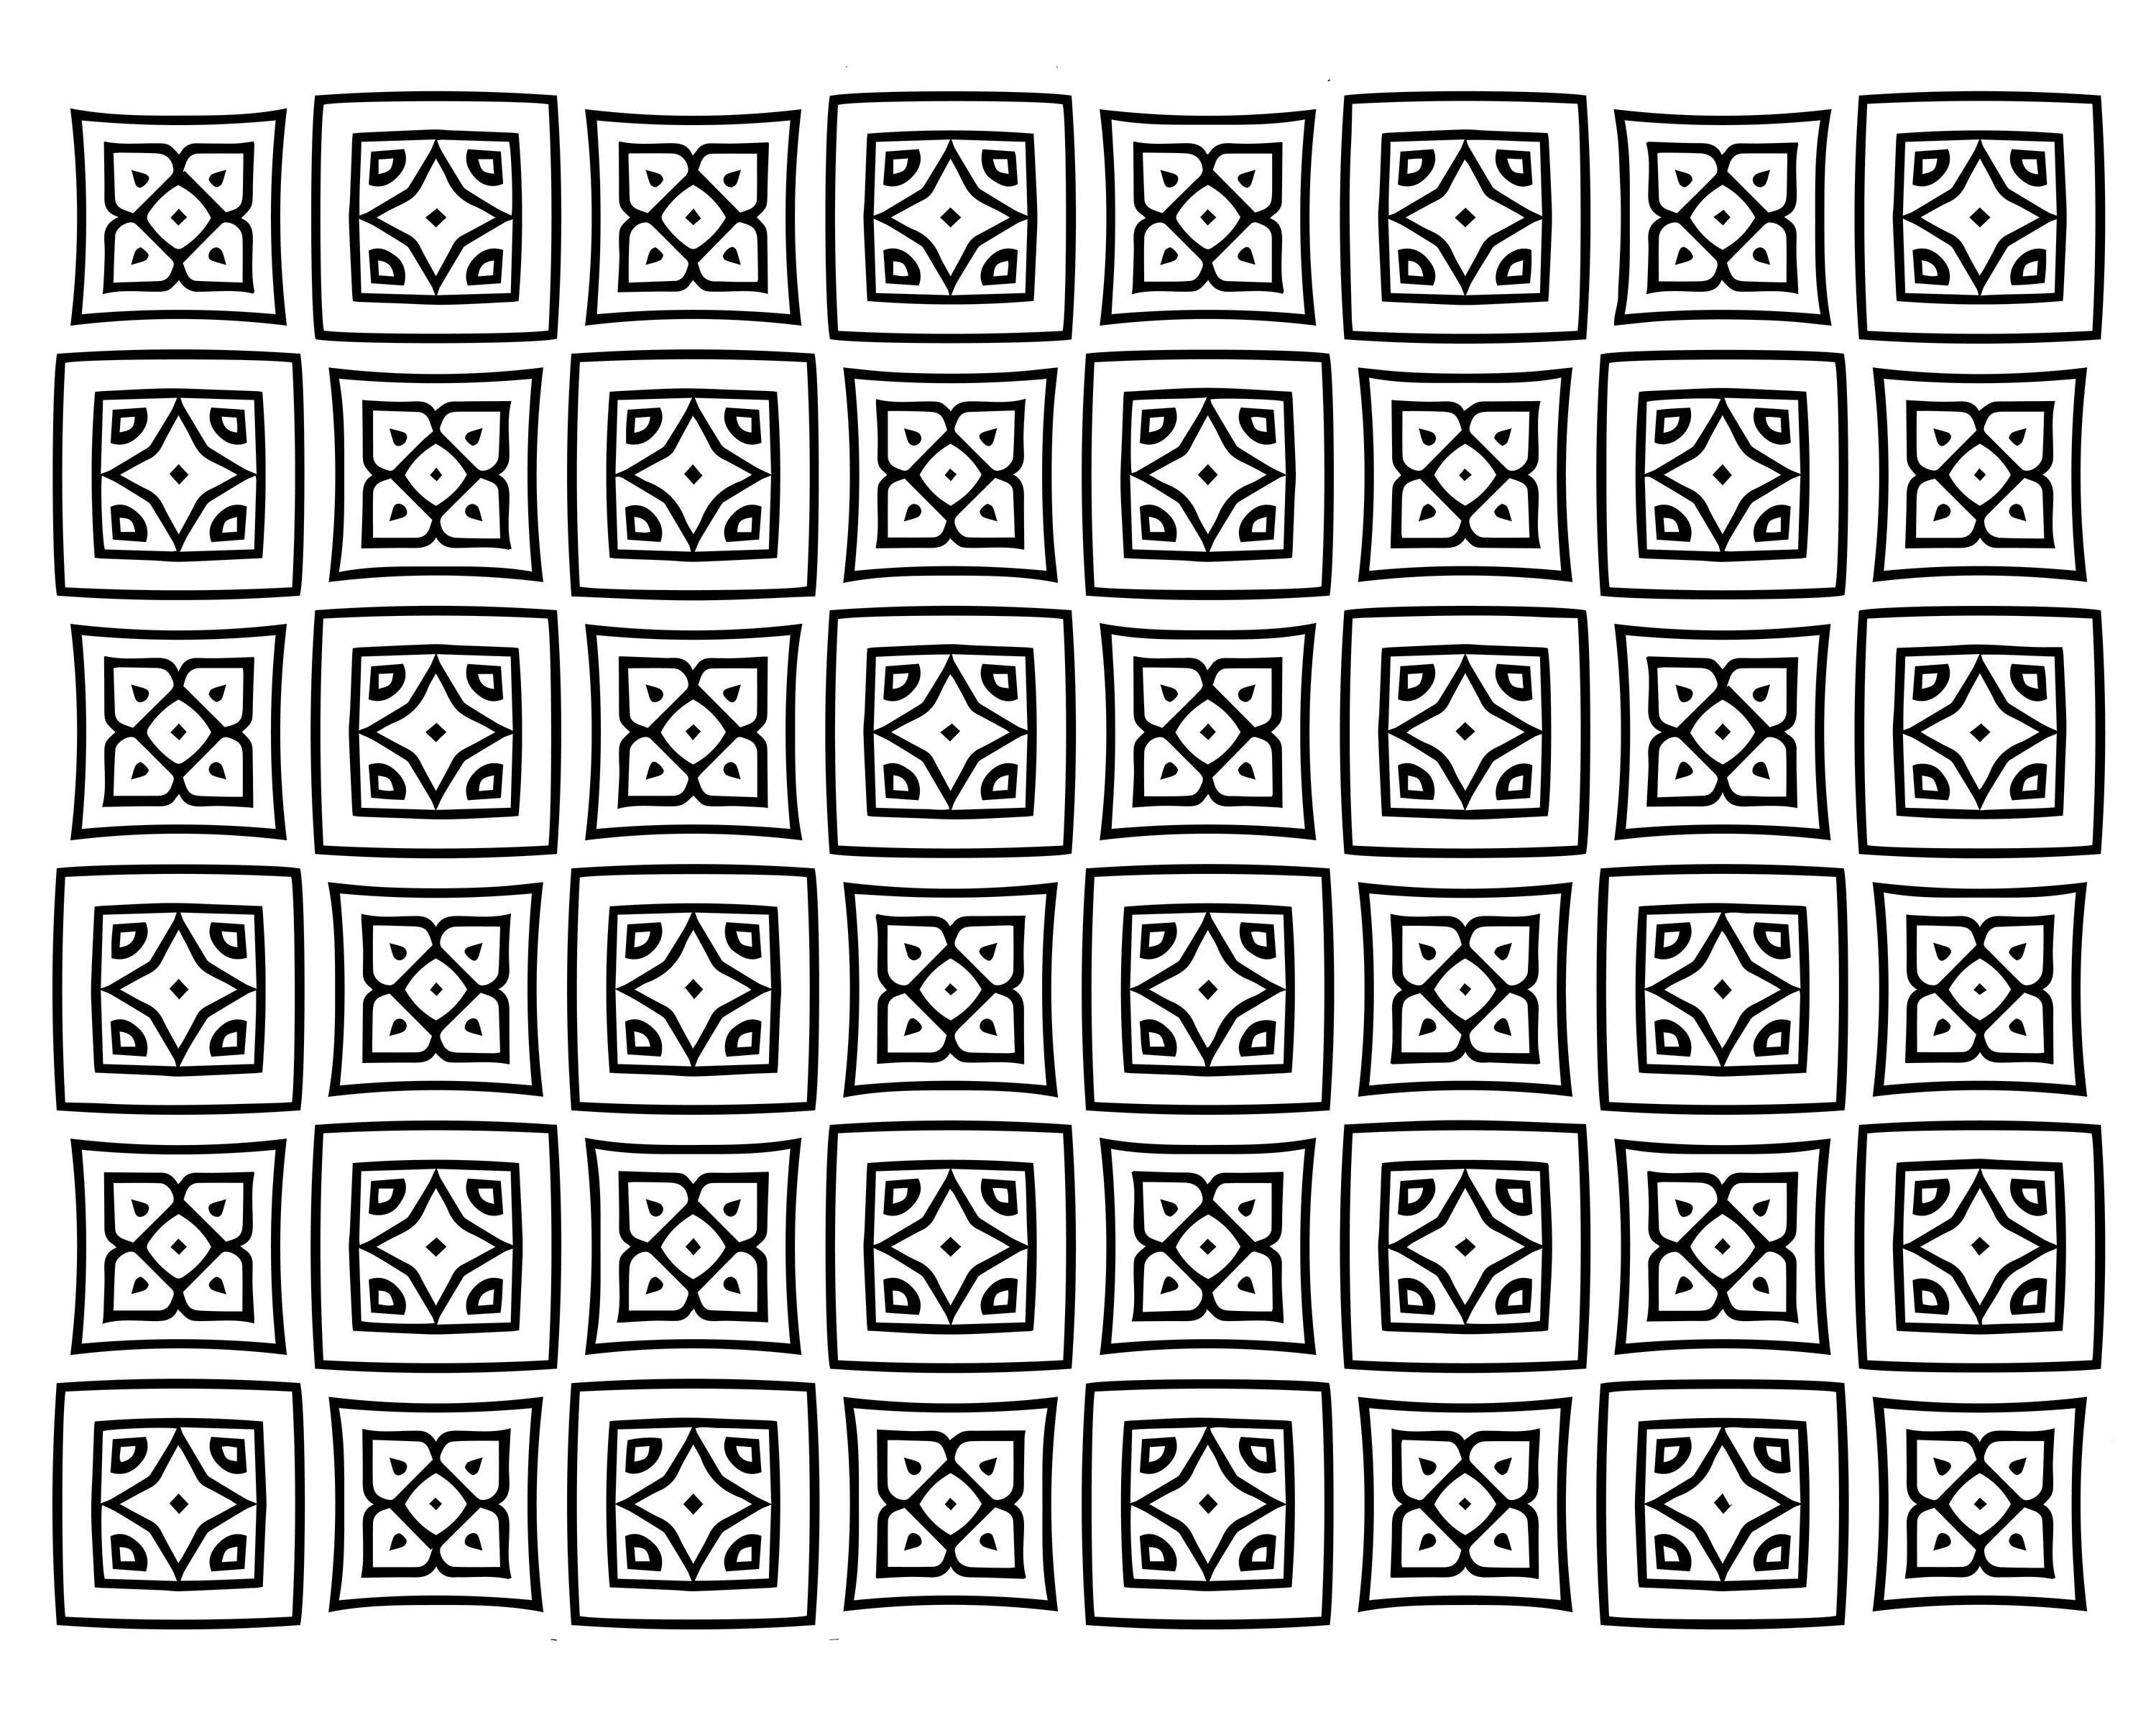 Free Square Quilt Pattern Adult Coloring Page Pattern Coloring